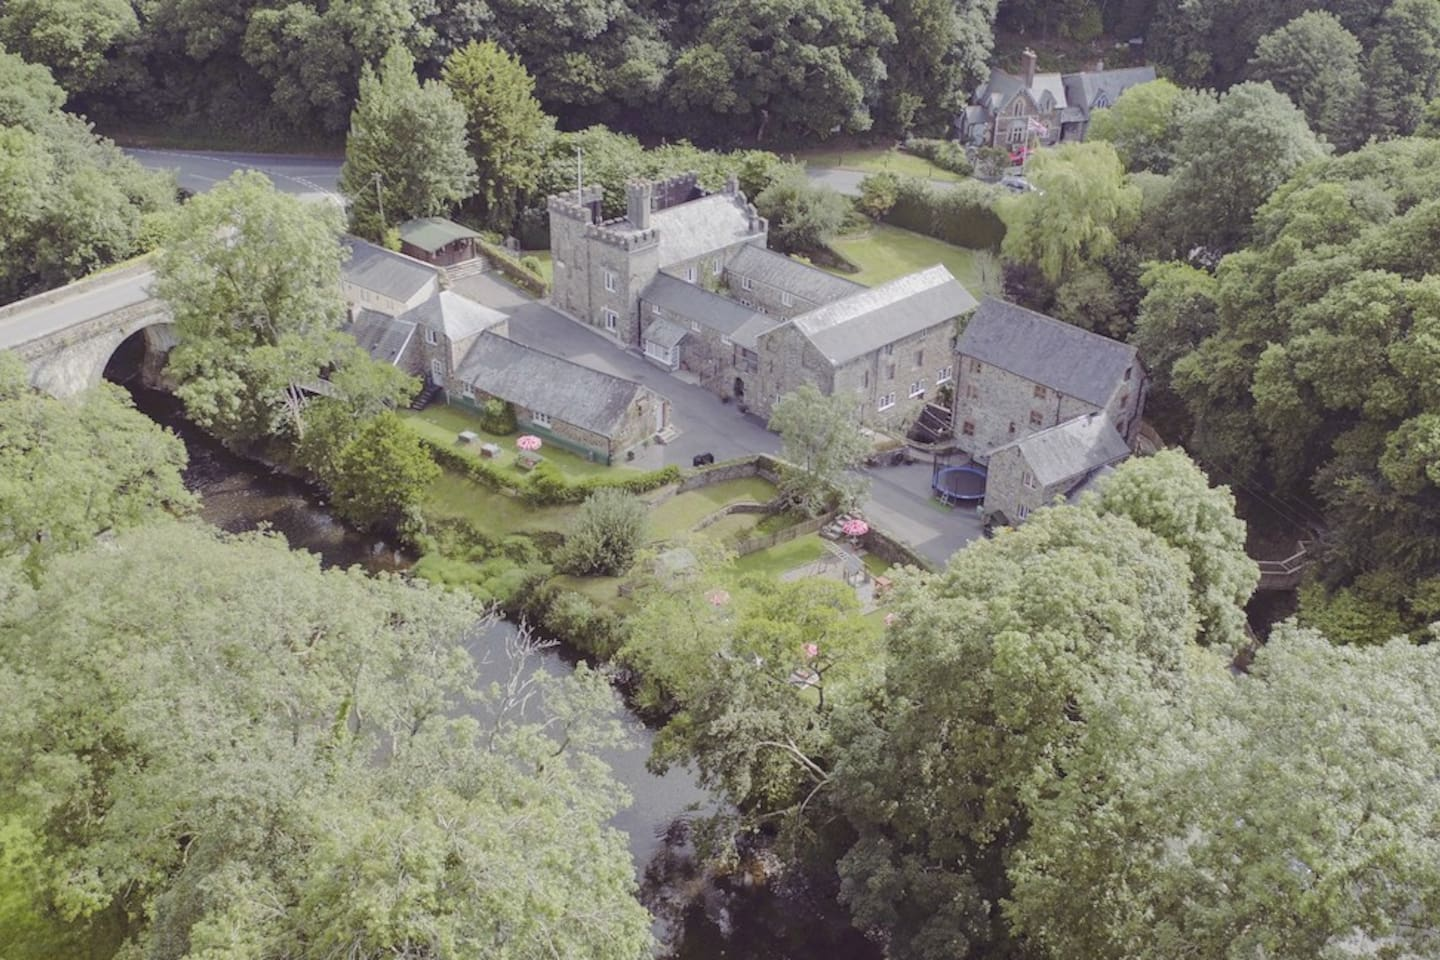 Aerial view of Orford Mill